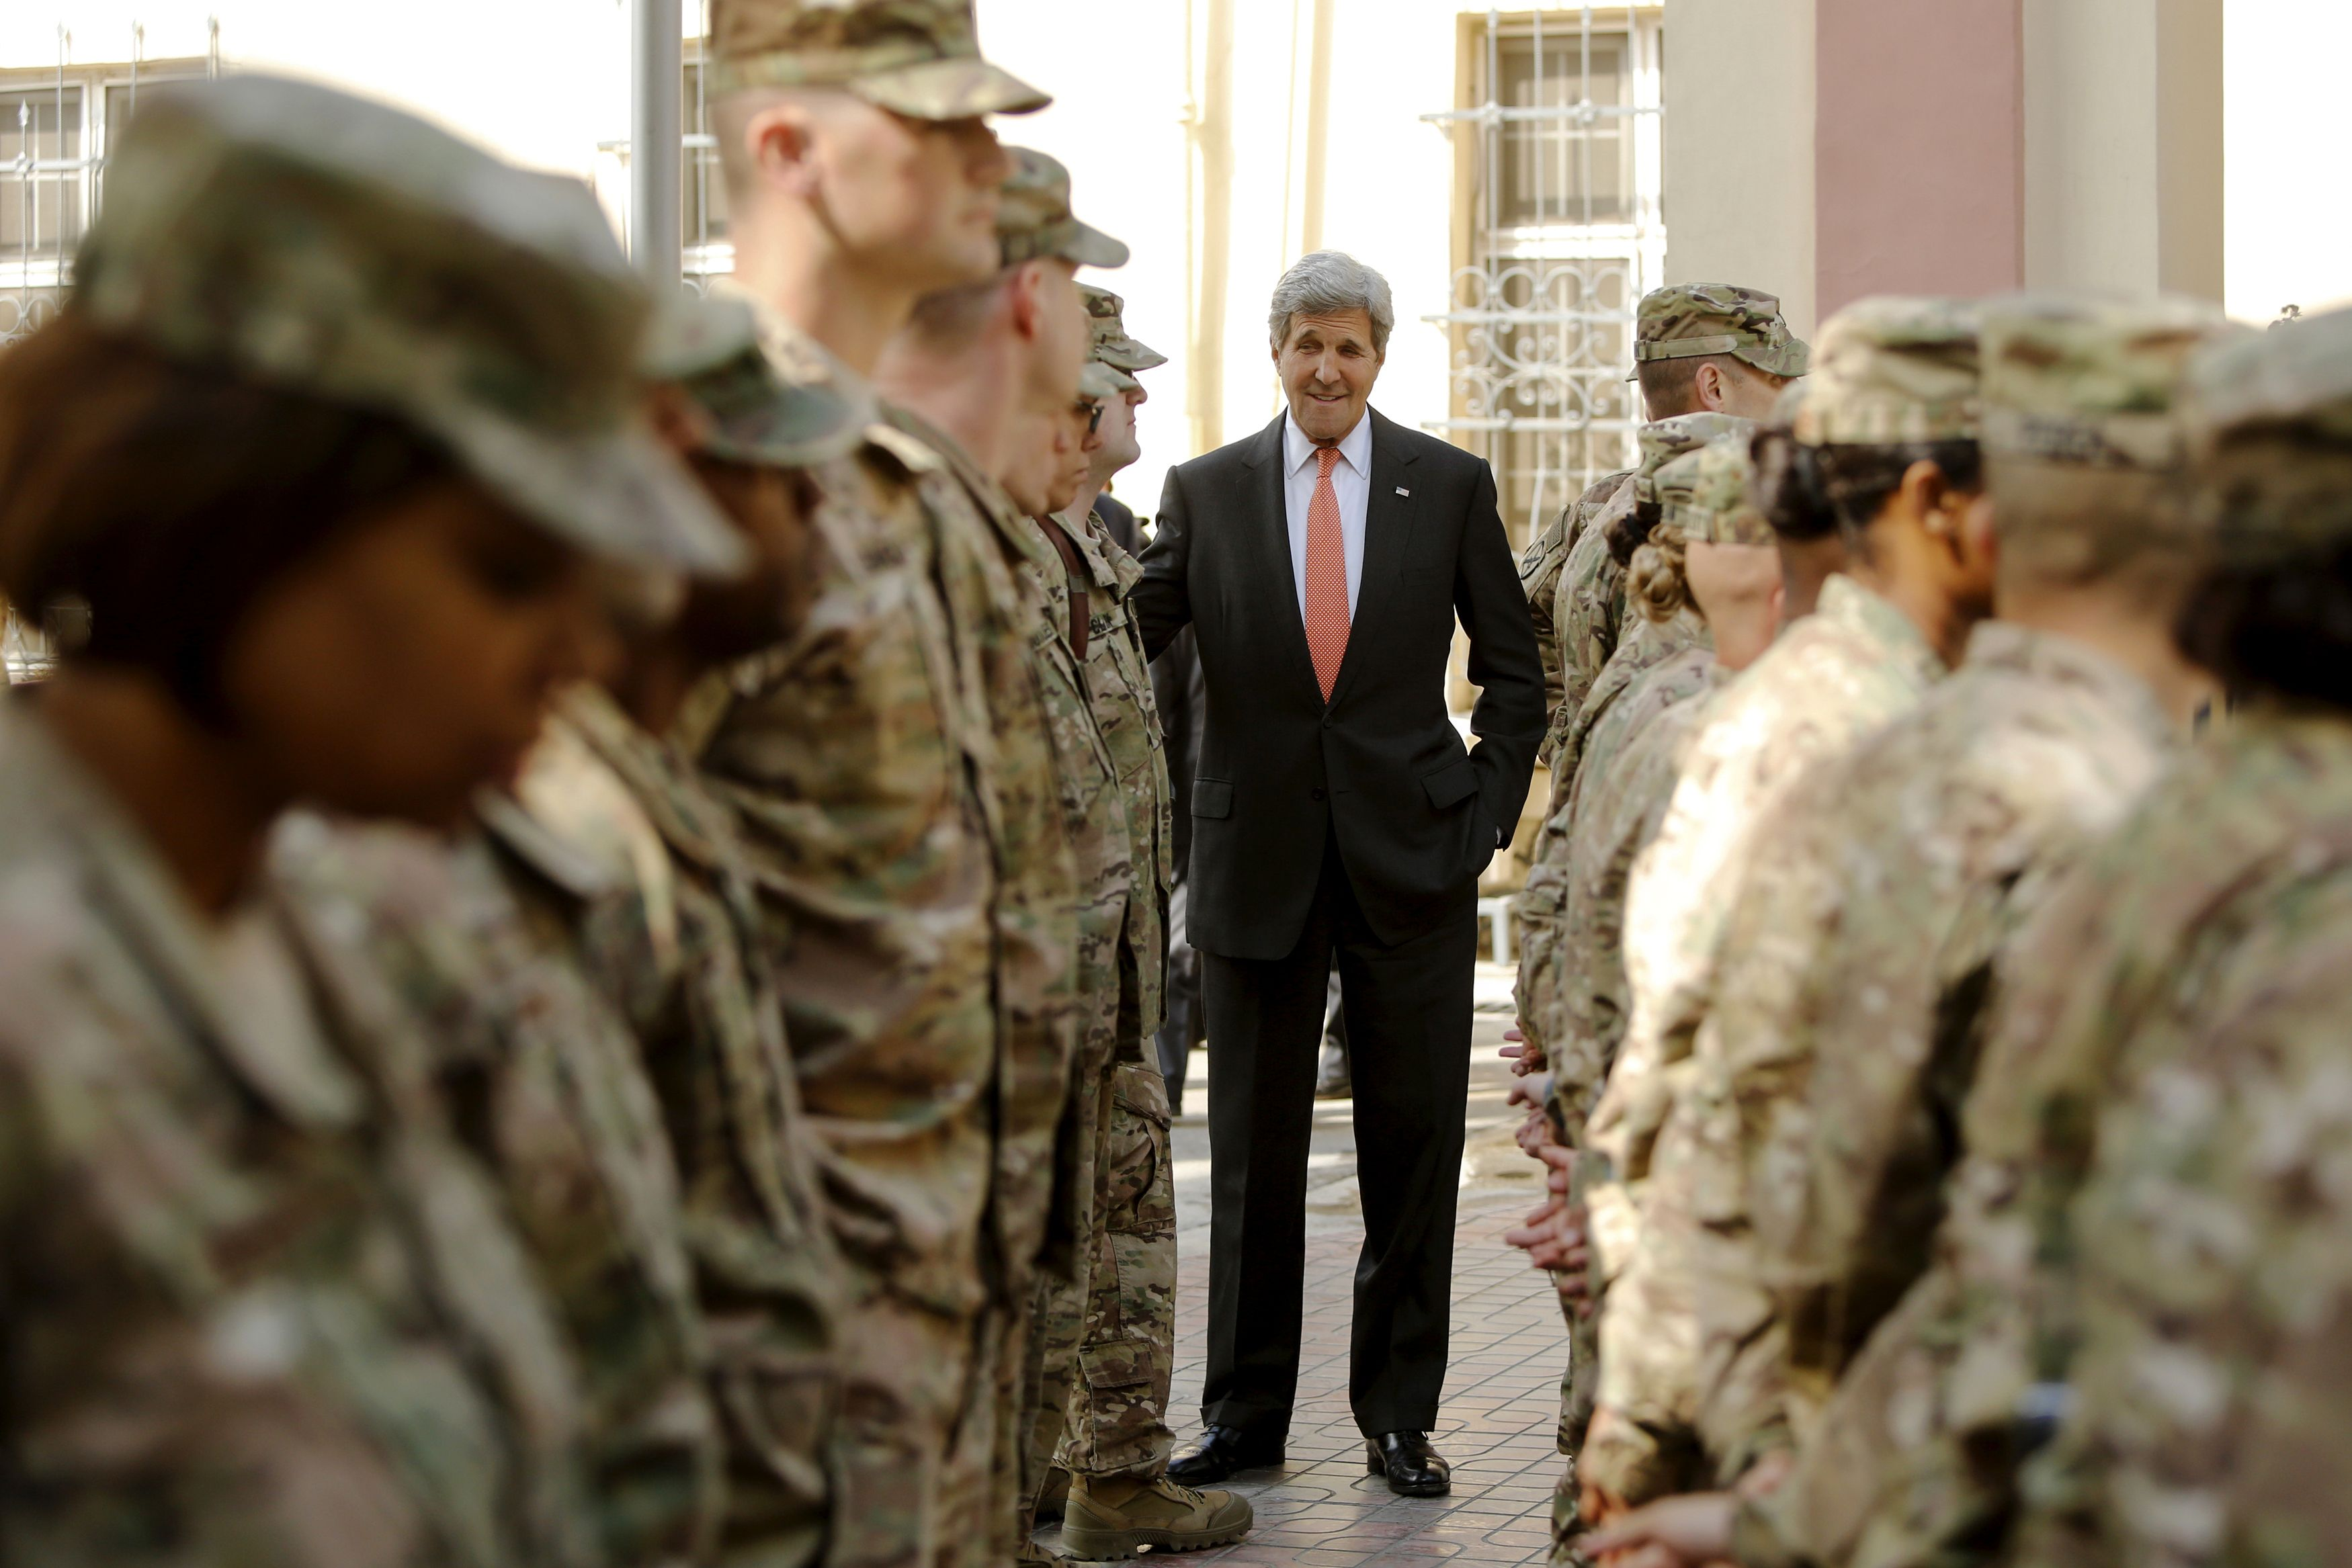 US Secretary of State John Kerry meets with US military personnel at Resolute Support Headquarters in Kabul on April 9, 2016.